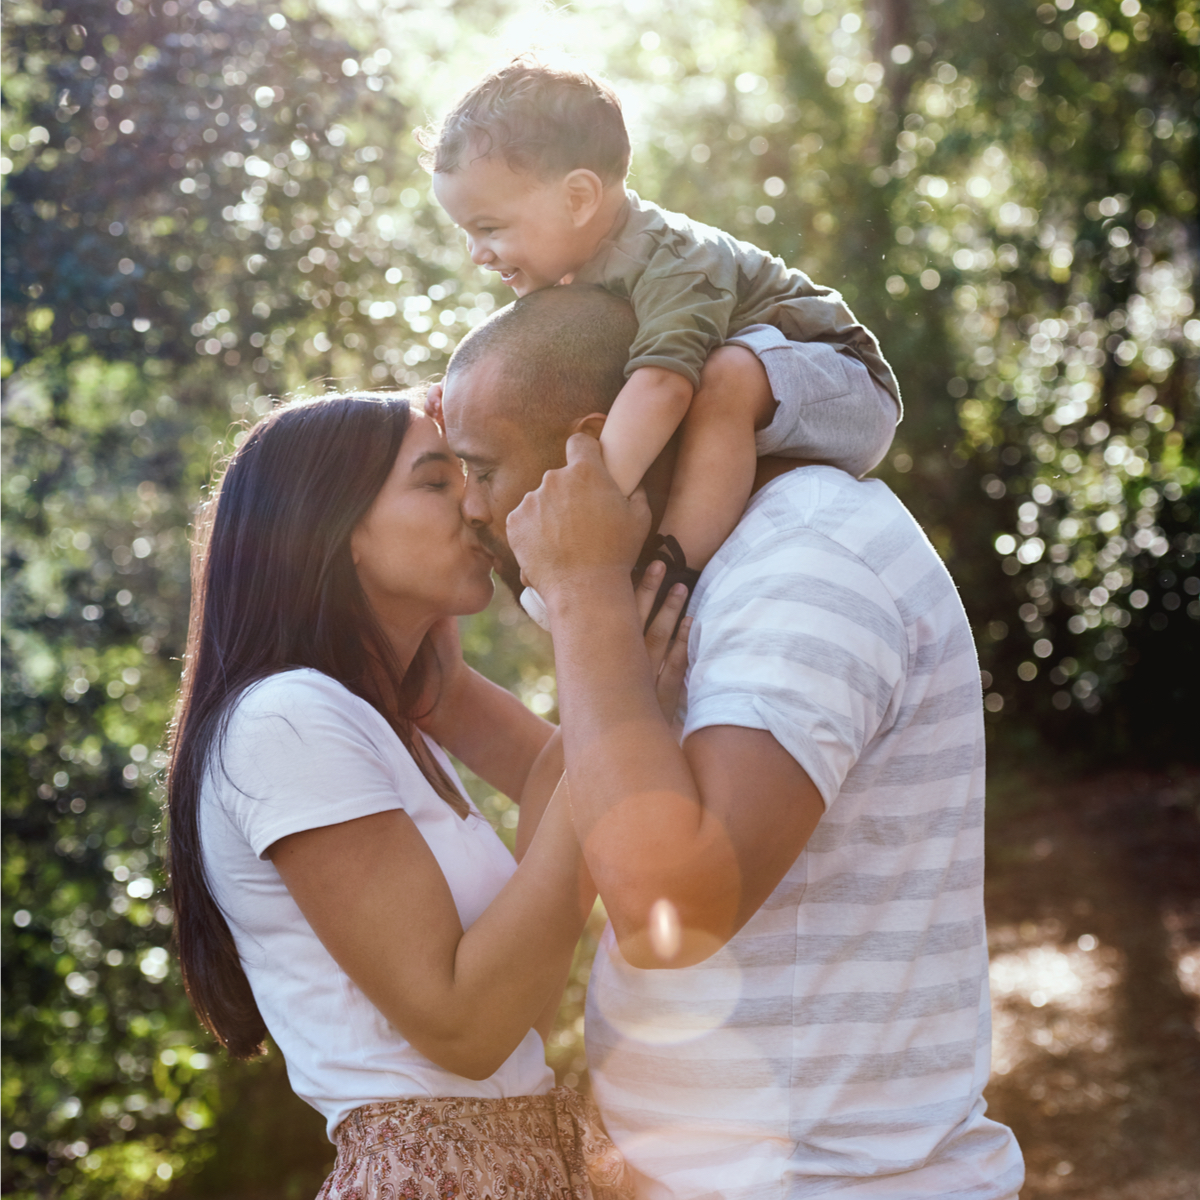 husband and wife with child www.herviewfromhome.com